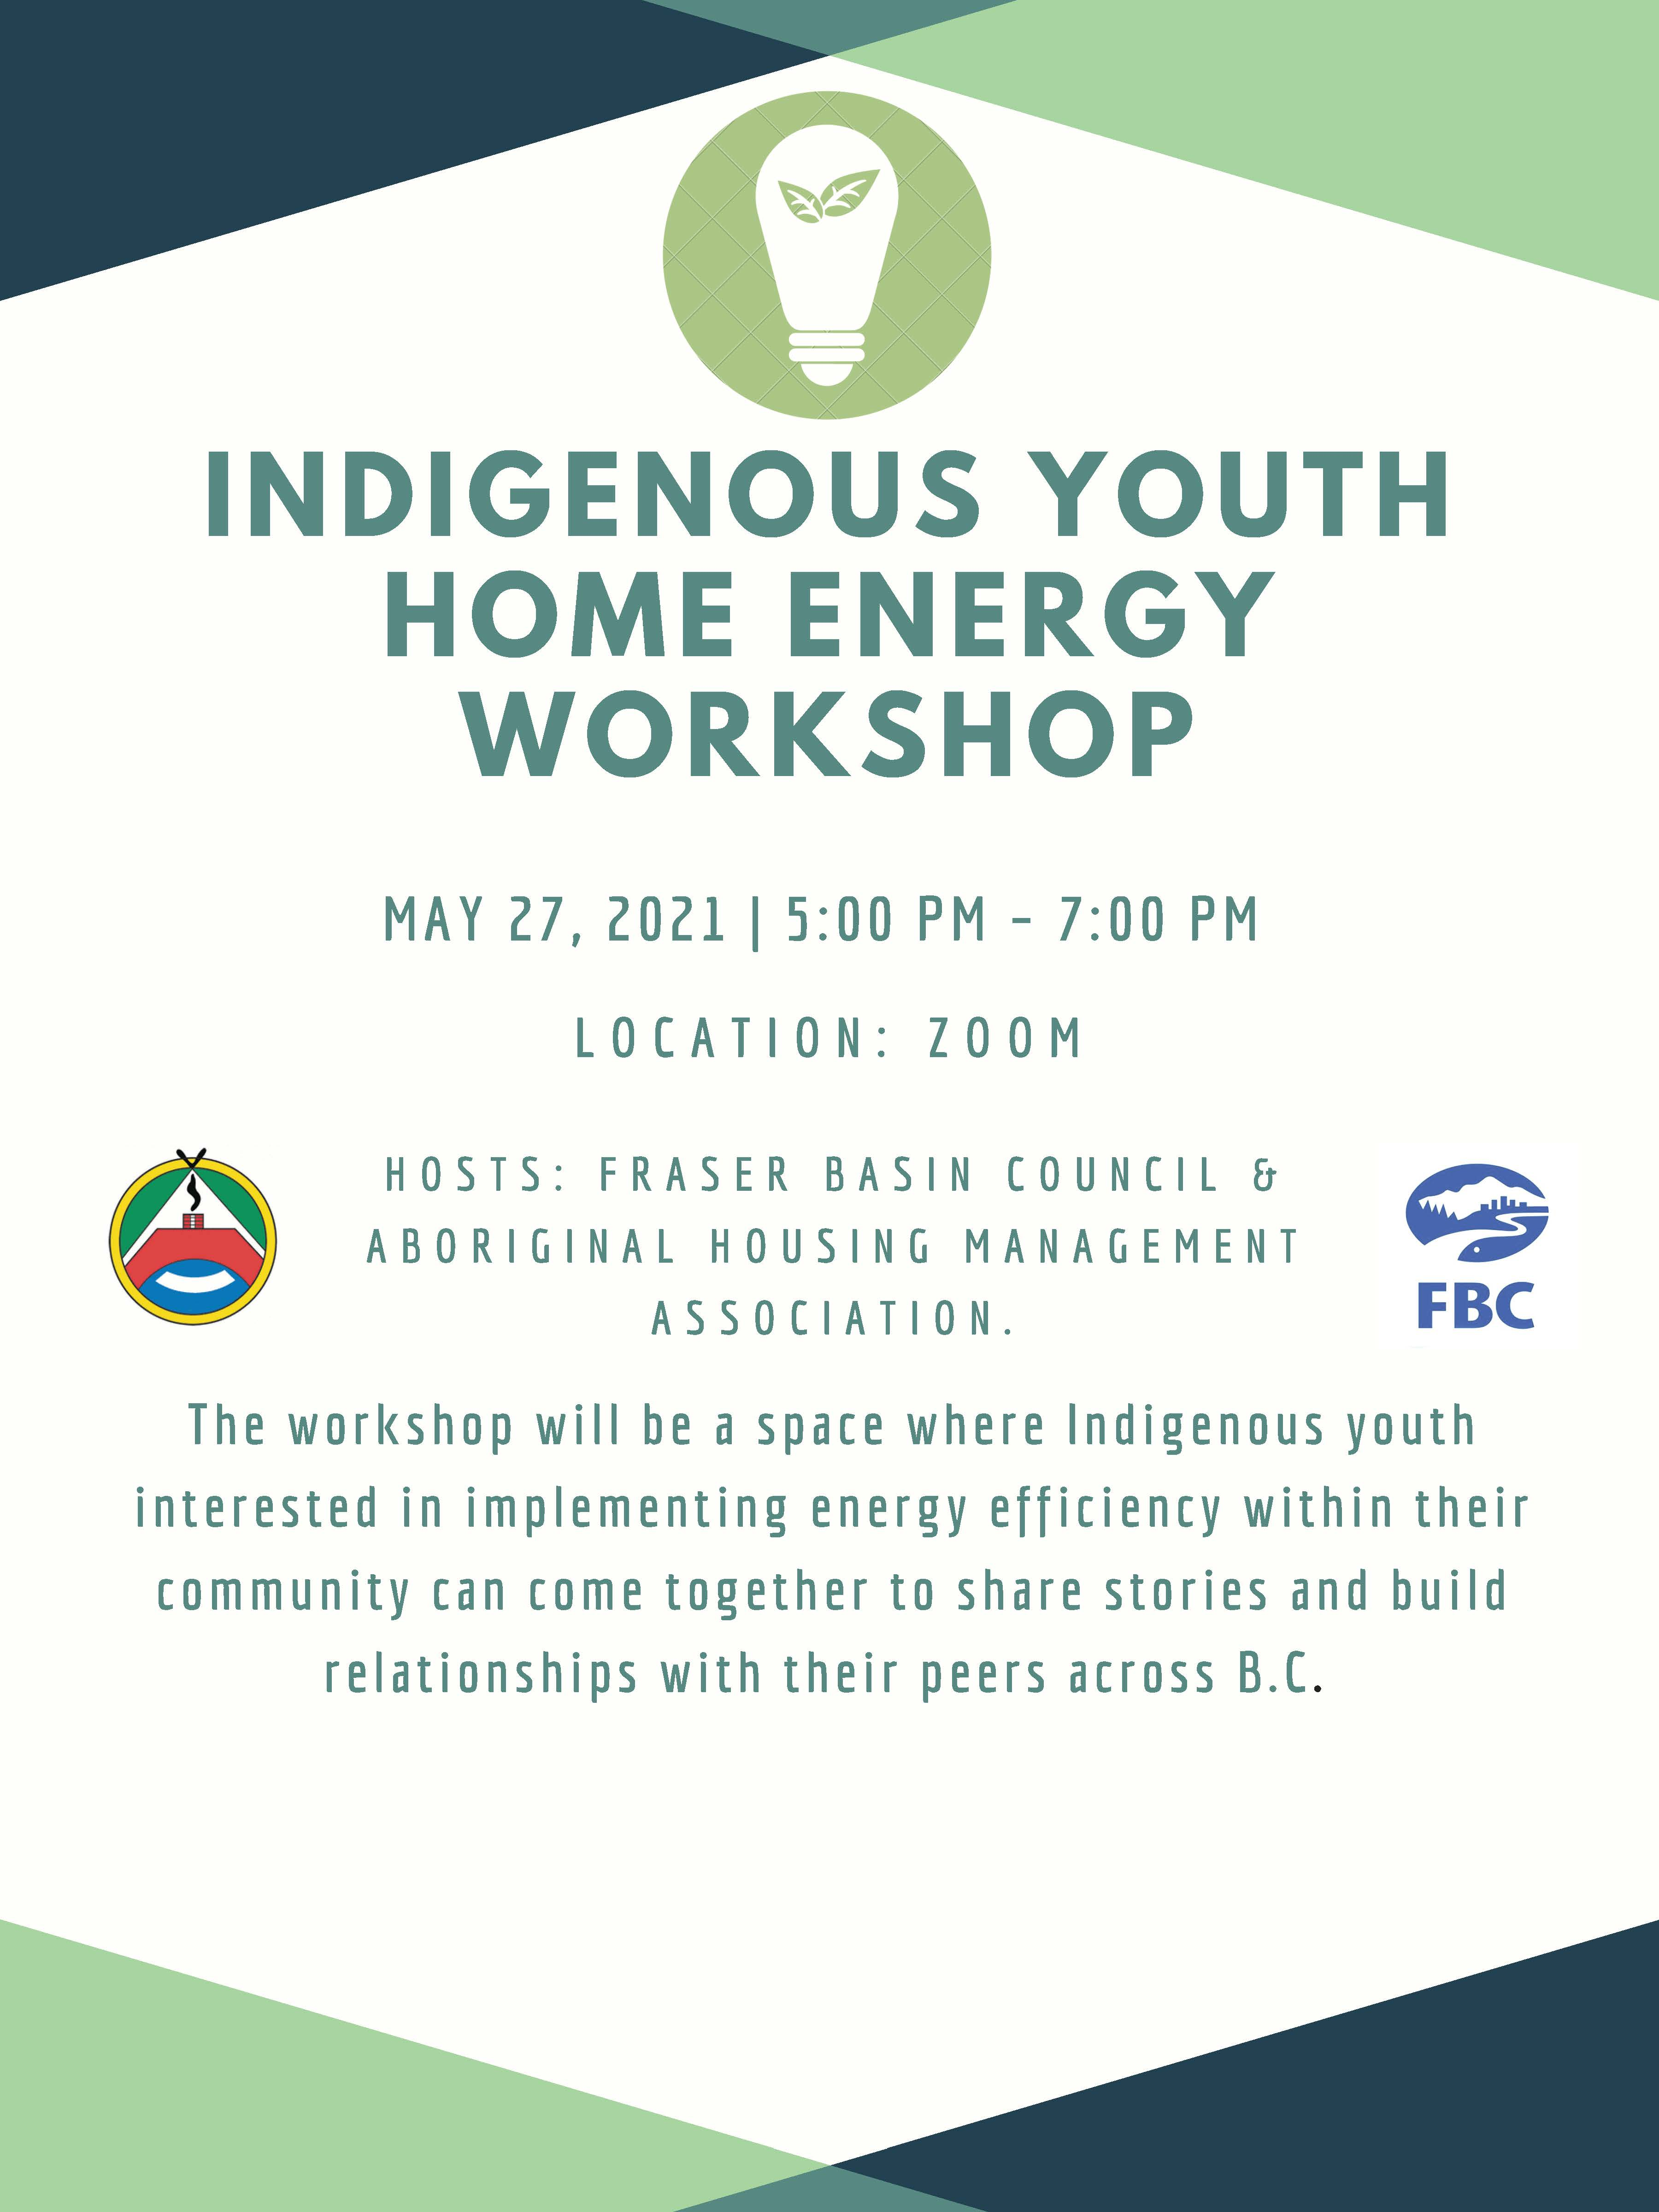 CCAQ_First_Nations_EnergySave/indigenous_youth_home_energy_workshop_2021.jpg